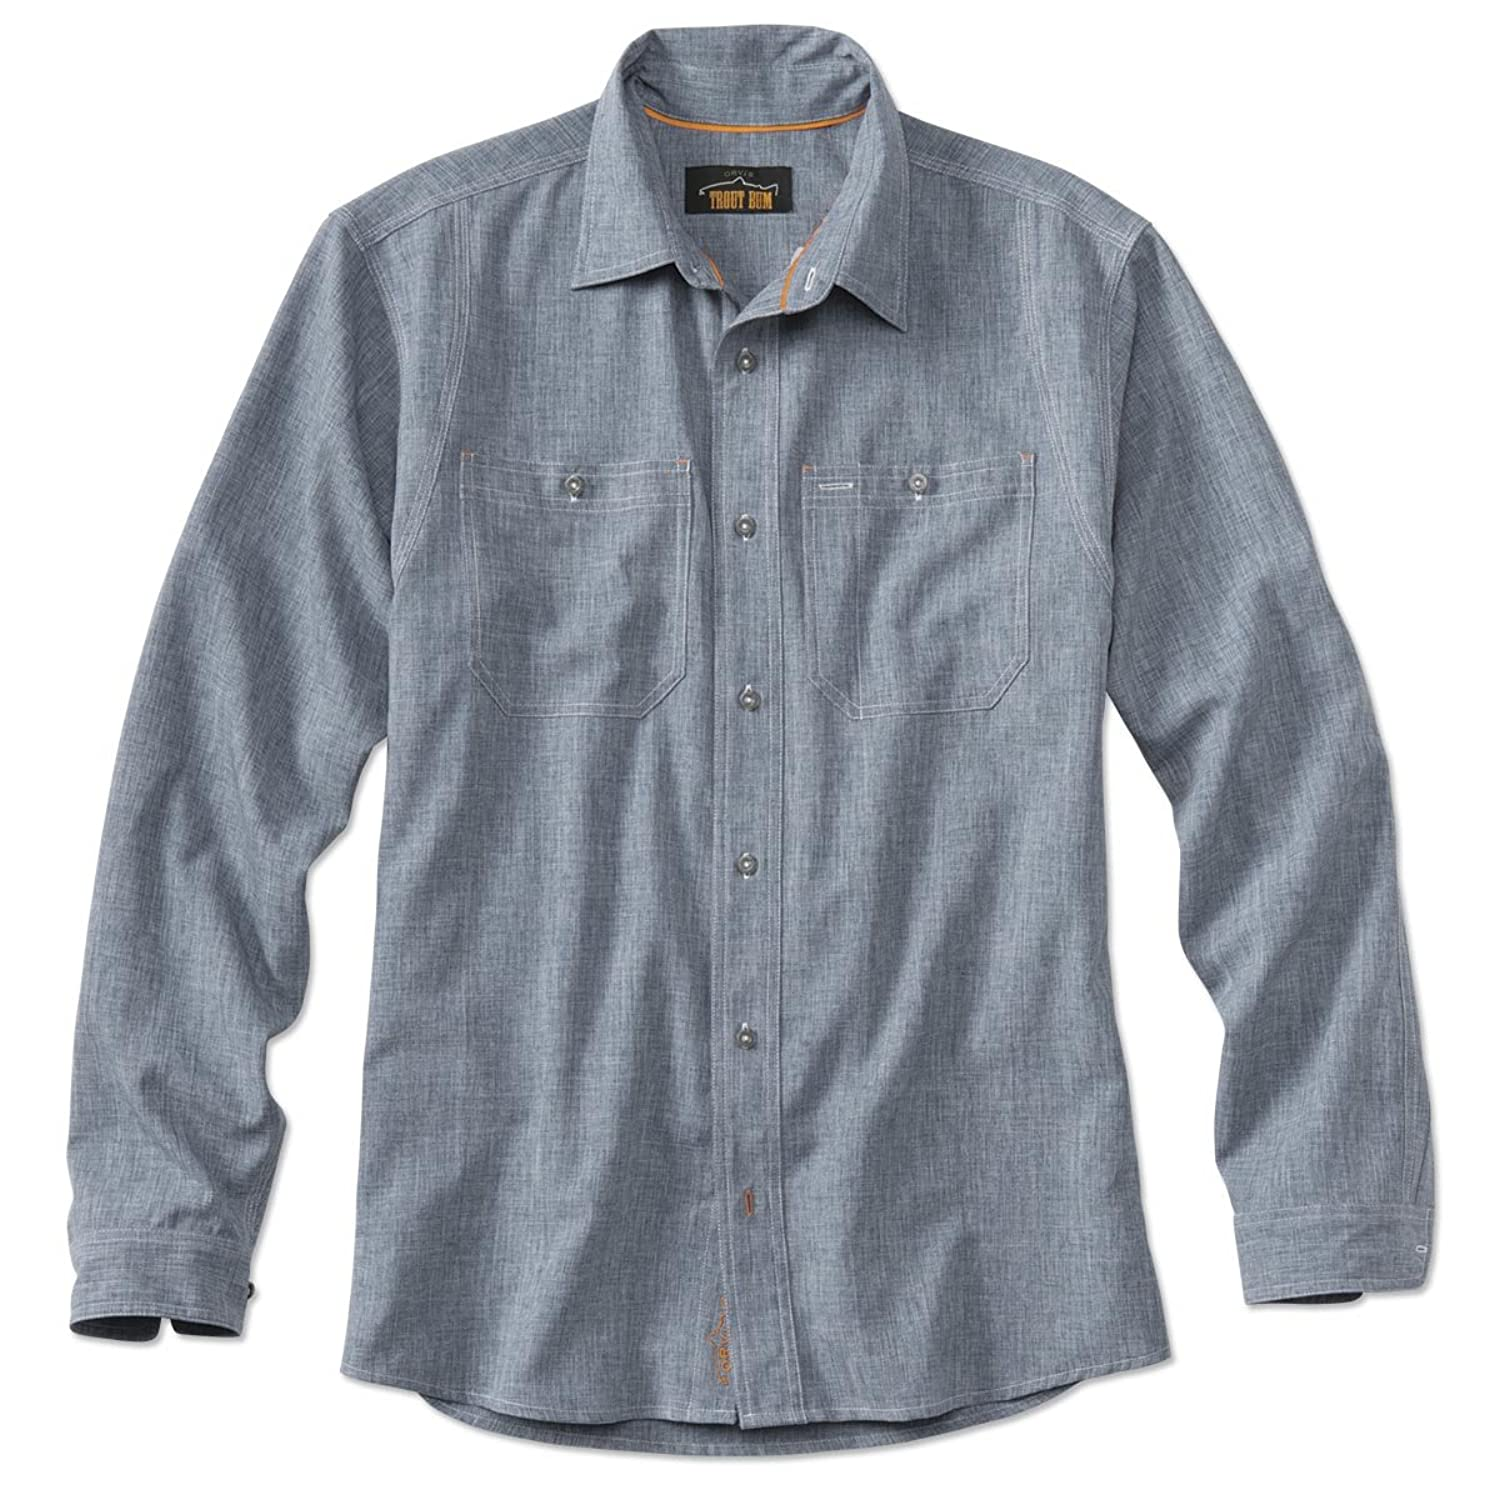 1920s Style Men's Shirts | Peaky Blinders Shirts and Collars Orvis Tech Chambray Work Shirt $89.00 AT vintagedancer.com